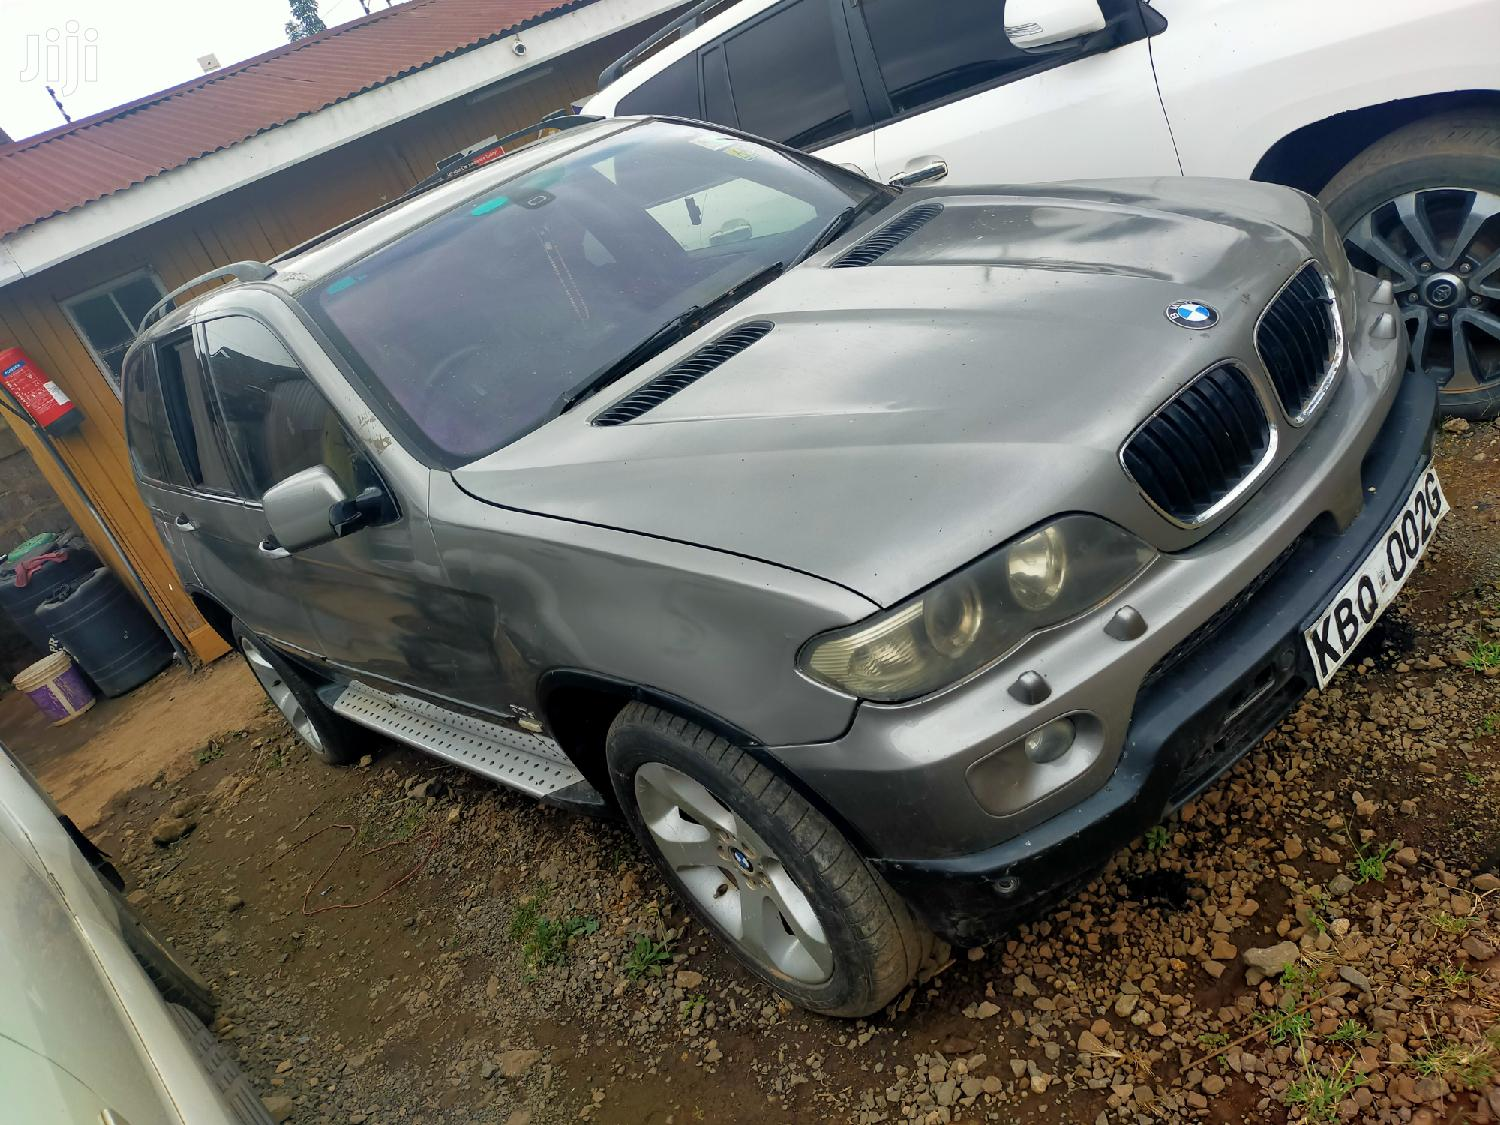 BMW X5 2004 Gray | Cars for sale in Nairobi Central, Nairobi, Kenya